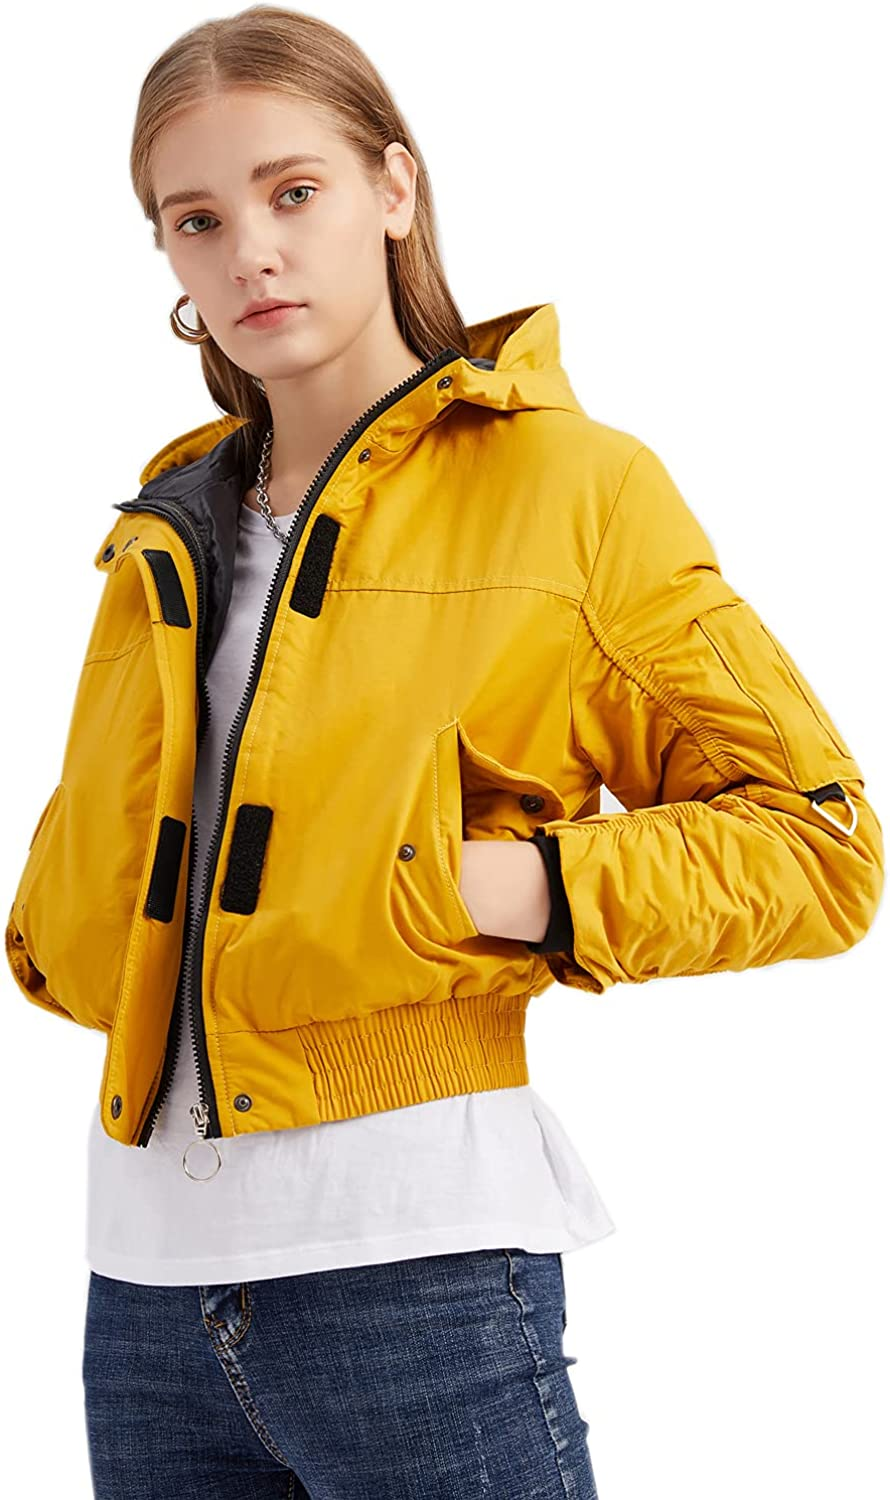 GZDMFS Womens Casual Hooded Crop Jackets Lightweight Quilted Padded Short Slim Coat Outwear